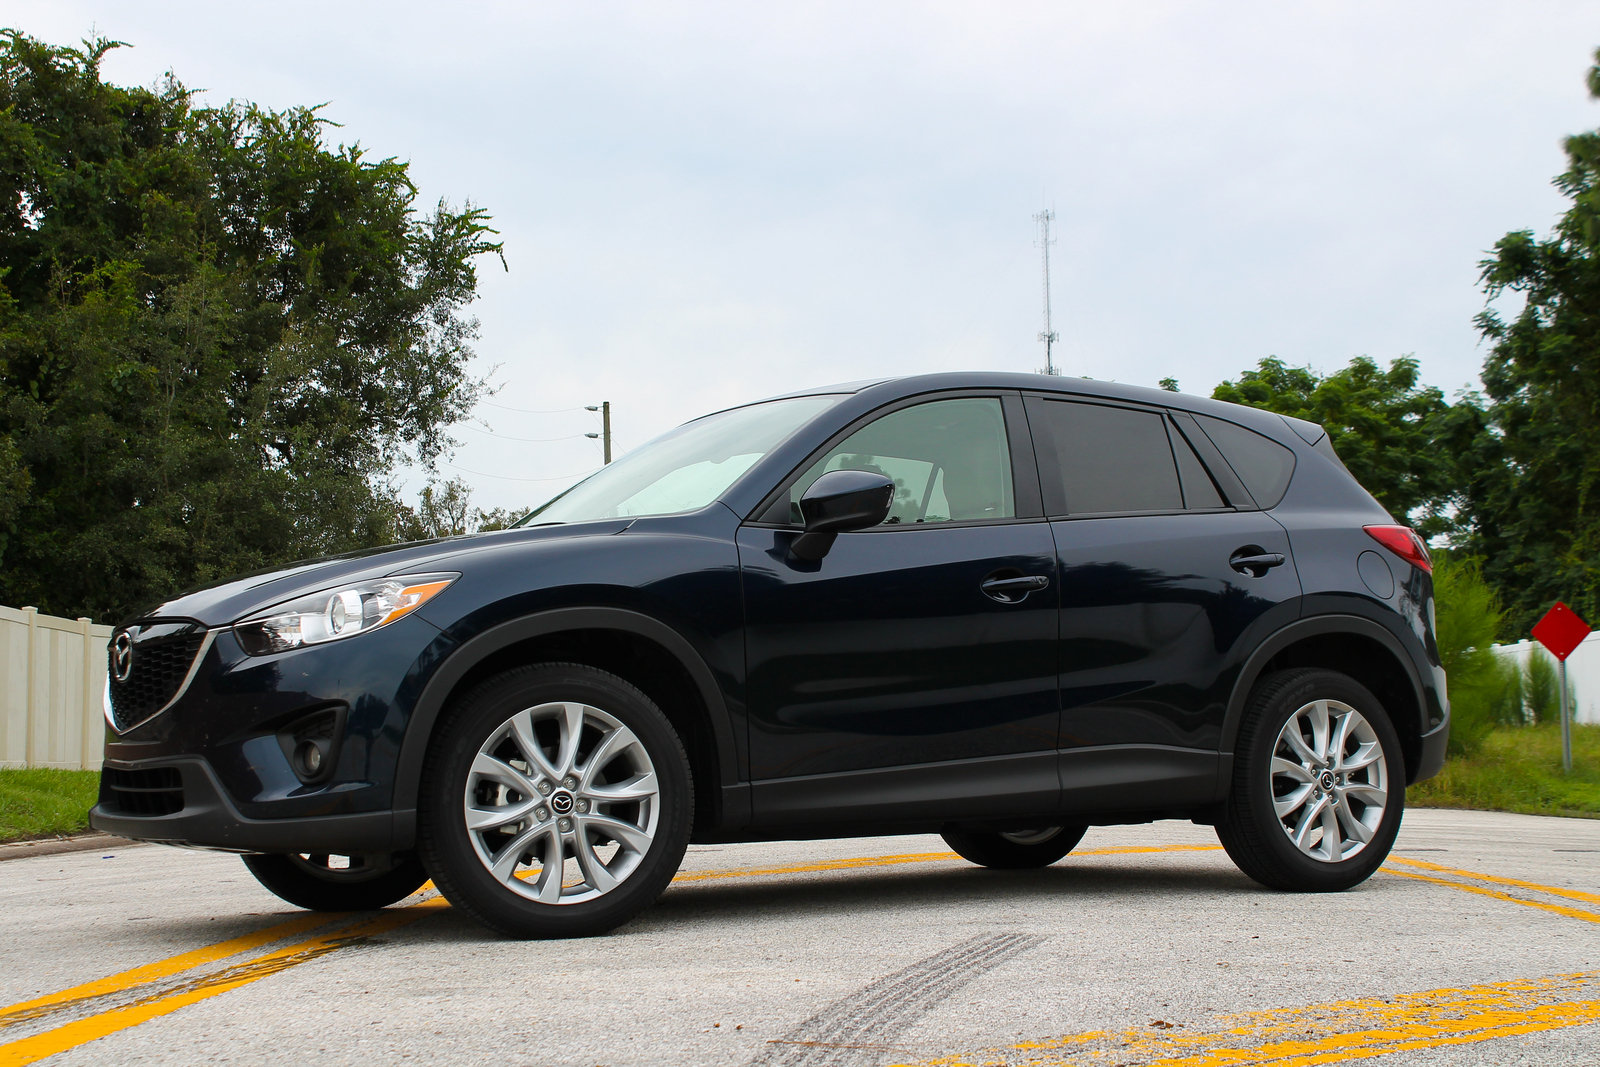 2015 mazda cx 5 grand touring w tech package driven picture 572466 car review top speed. Black Bedroom Furniture Sets. Home Design Ideas